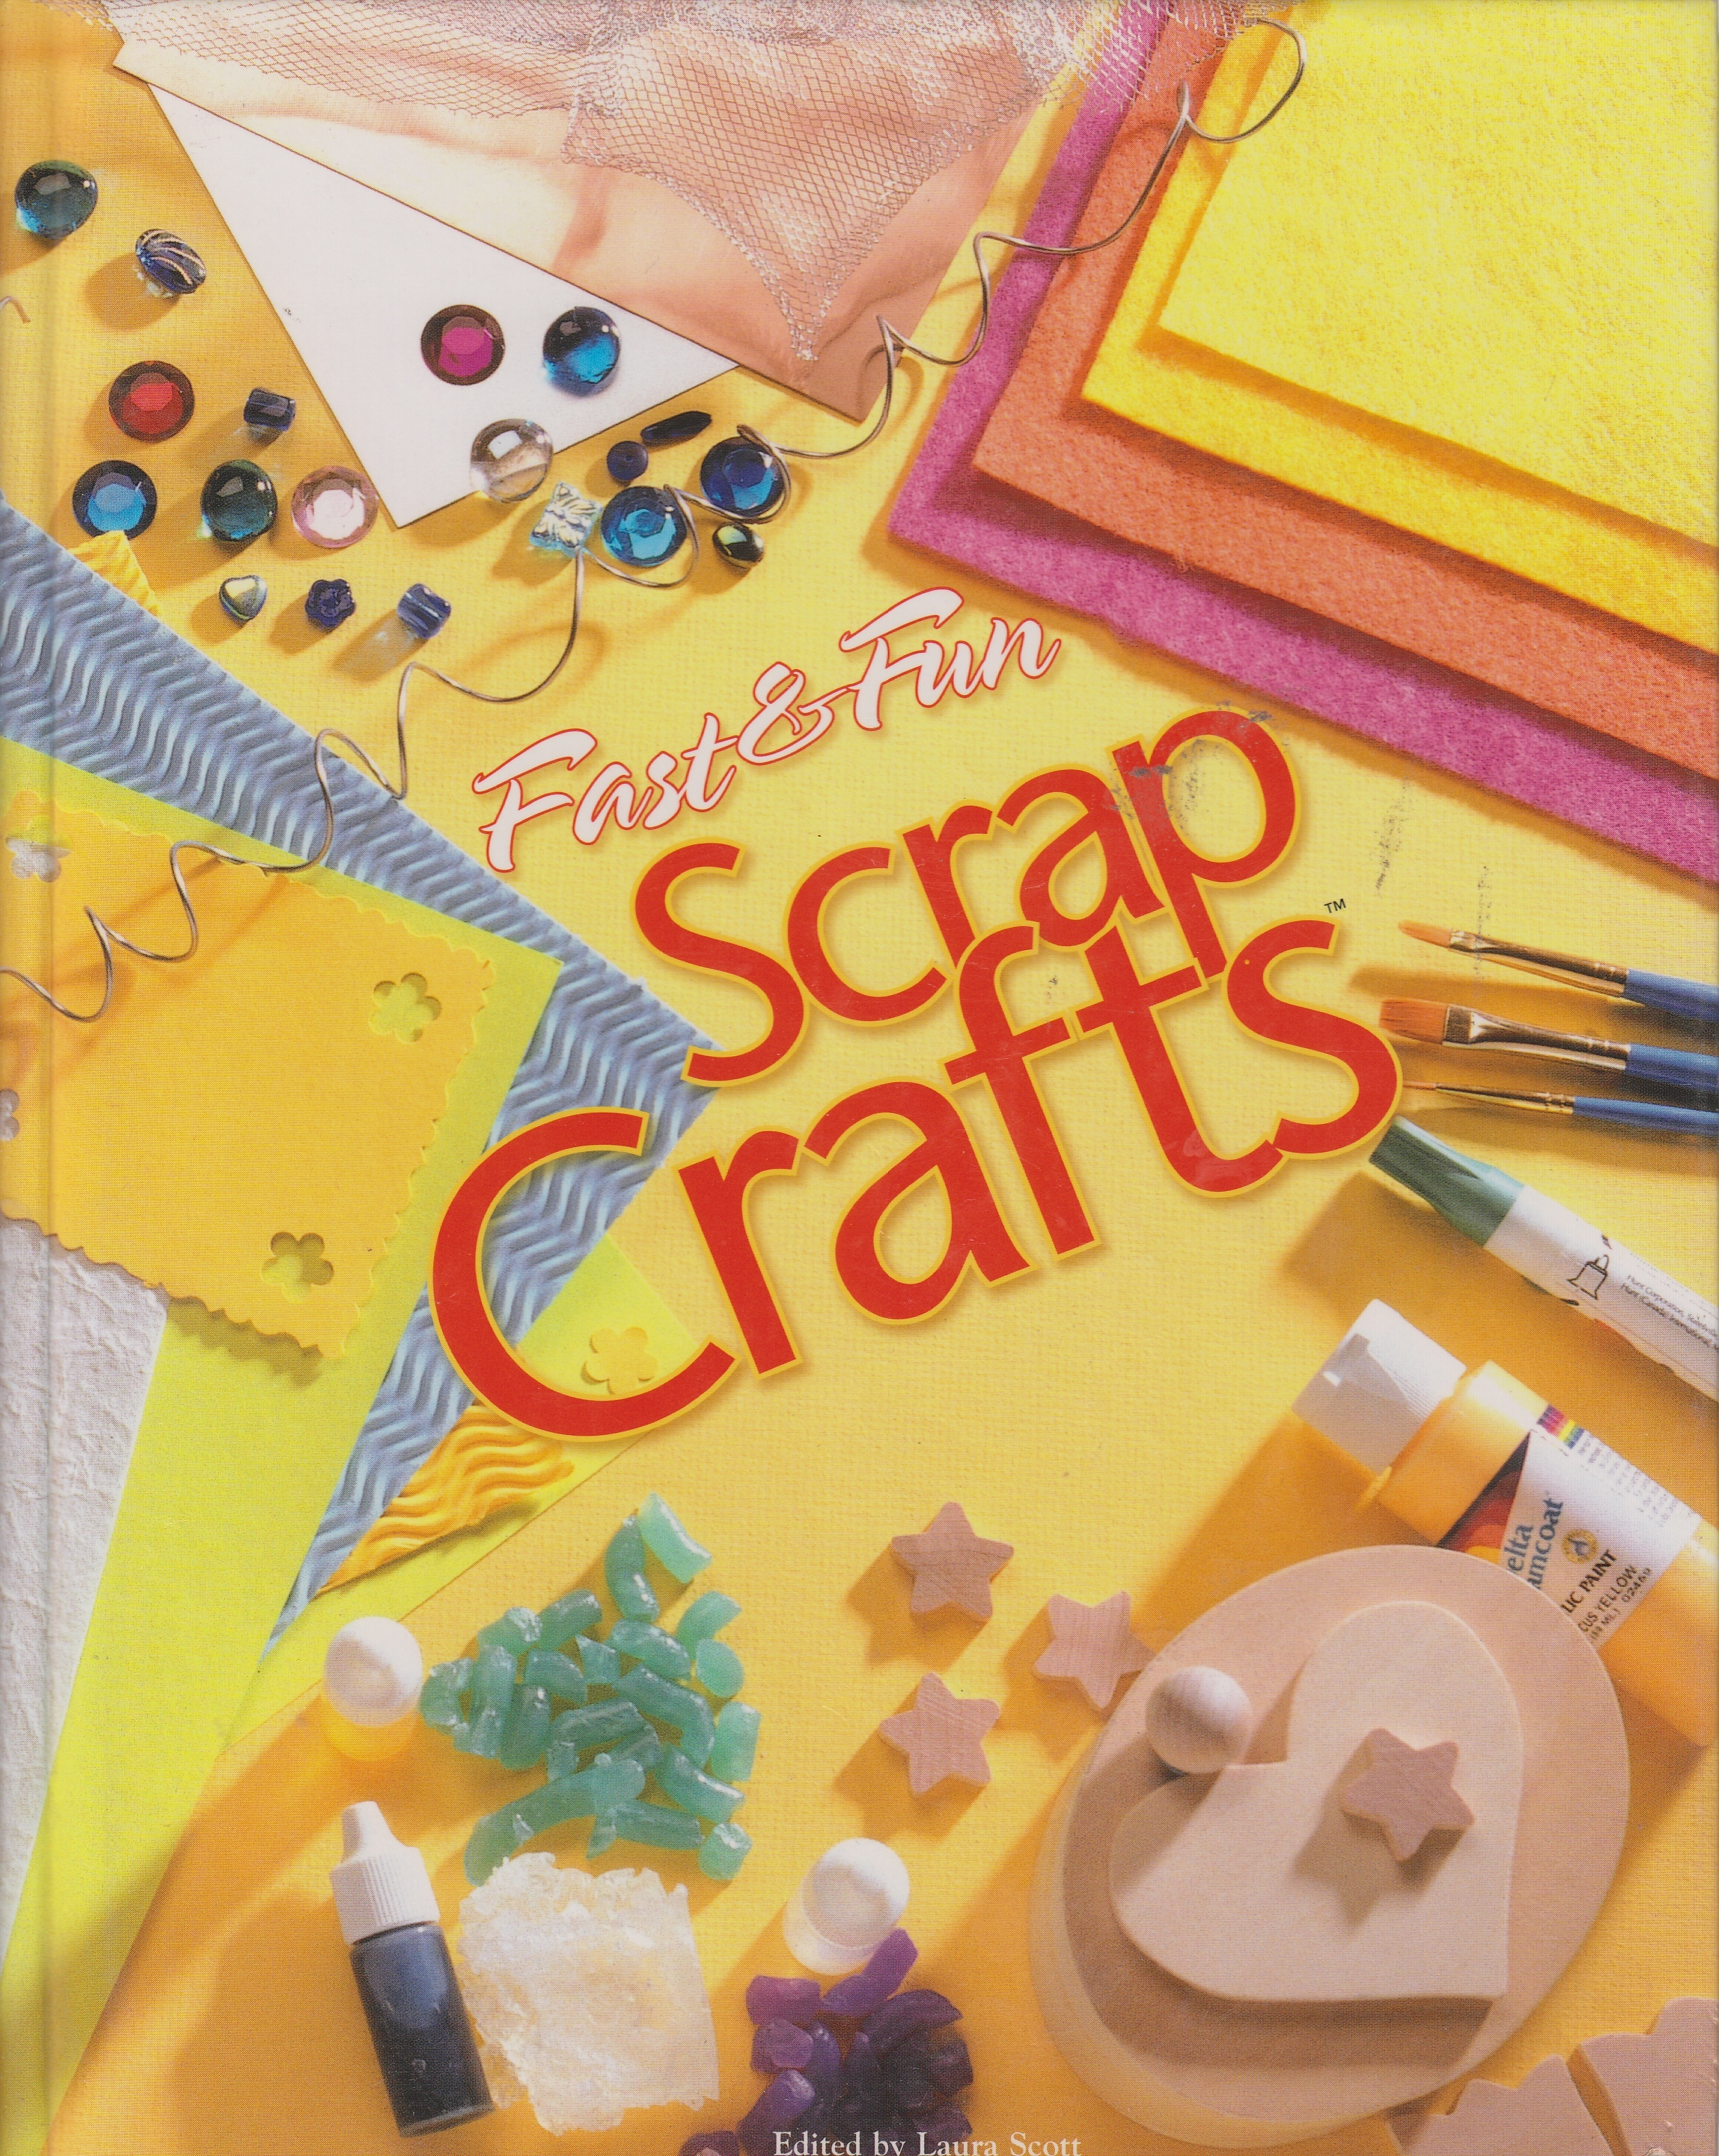 Image for Fast & Fun Scrap Crafts